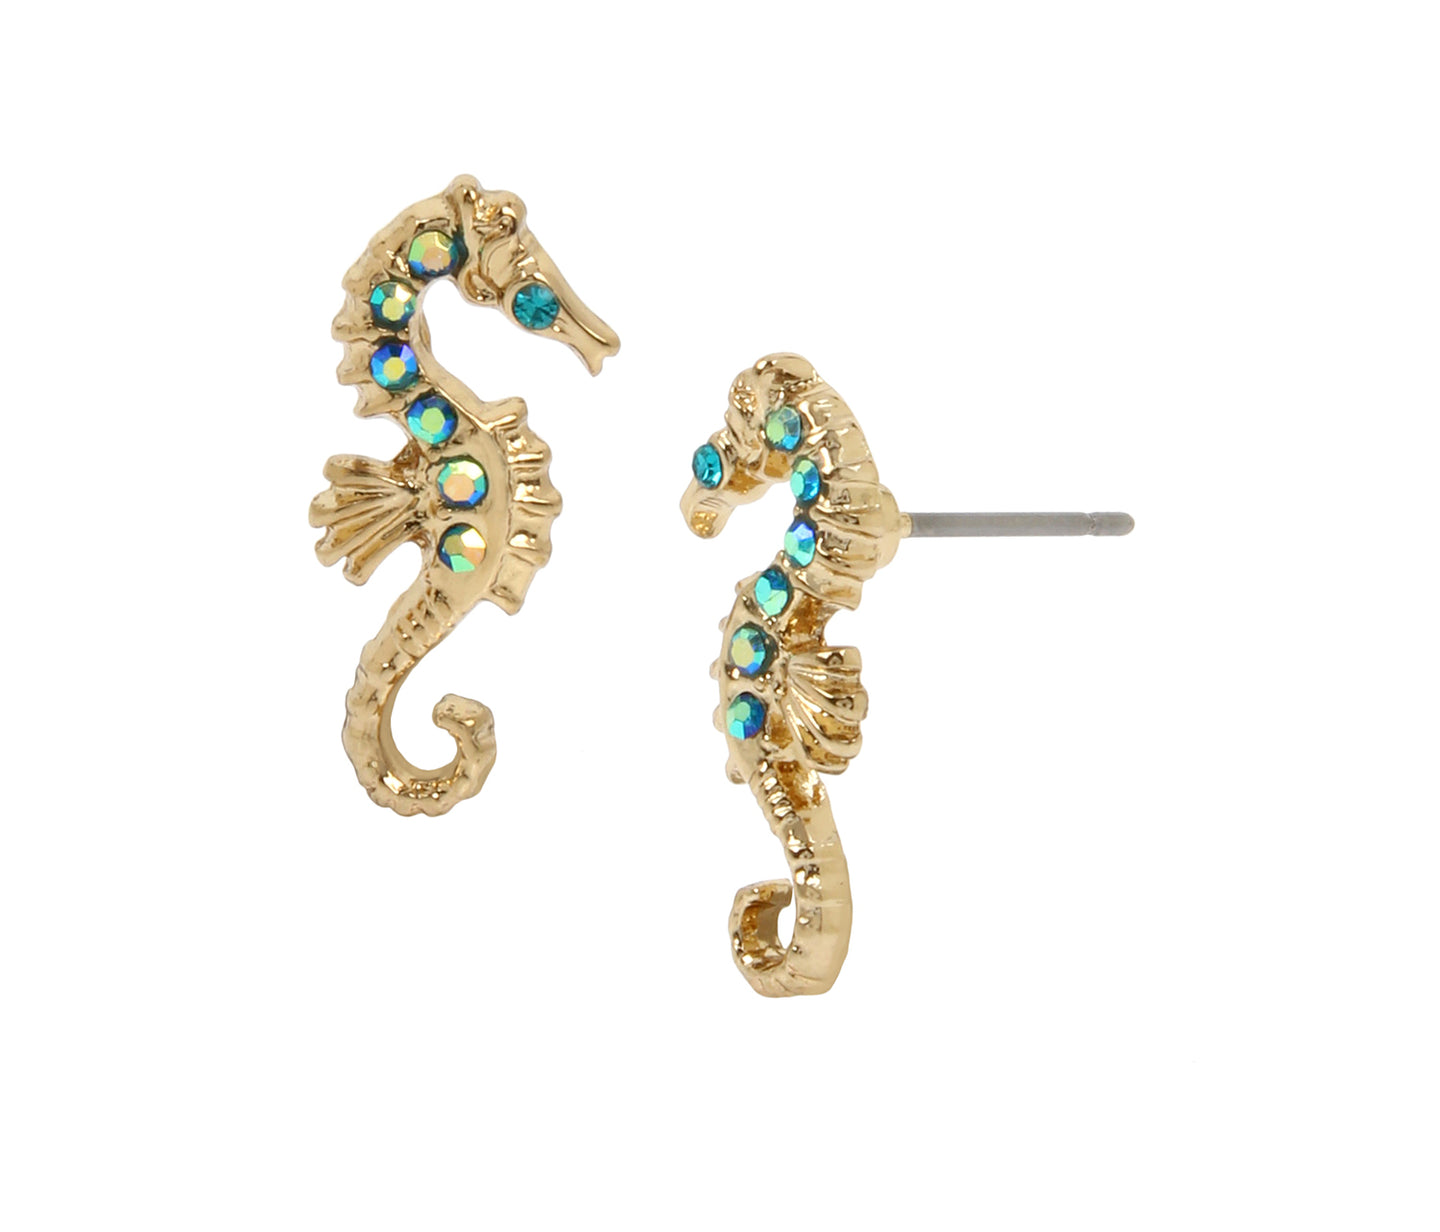 FESTIVAL MERMAID SEAHORSE STUD EARRINGS BLUE - JEWELRY - Betsey Johnson